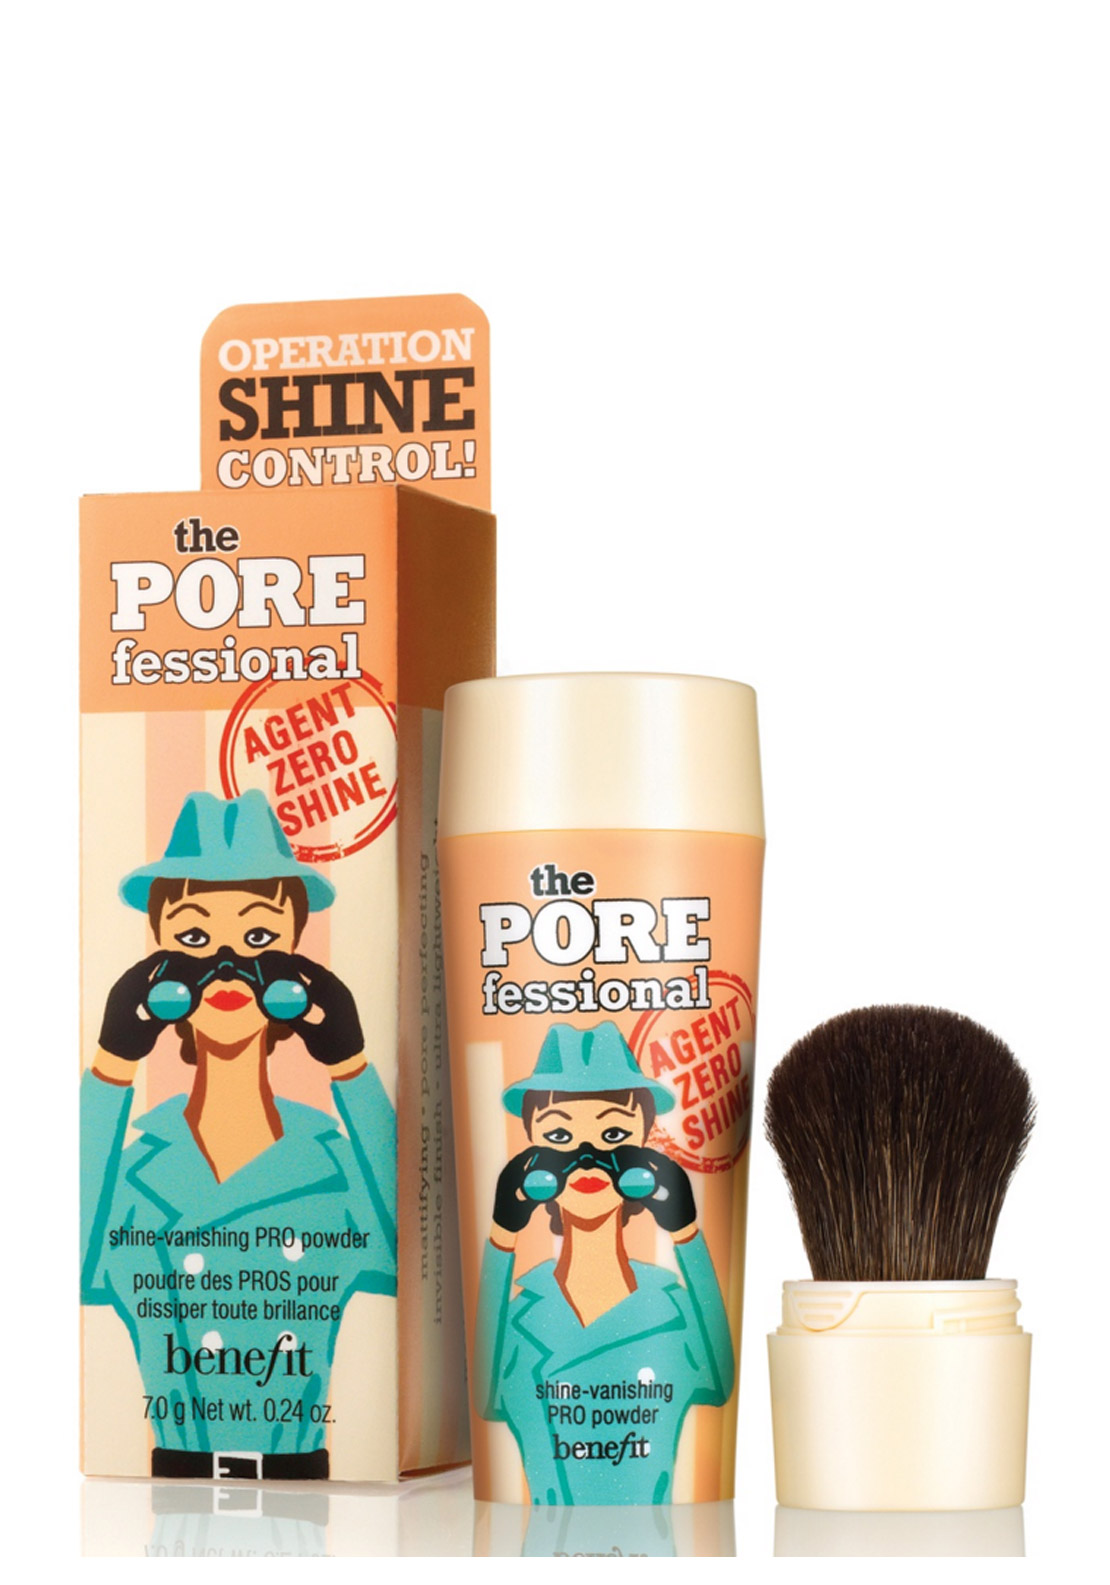 Benefit The POREfessional Agent Zero Shine Shine Vanishing PRO Powder